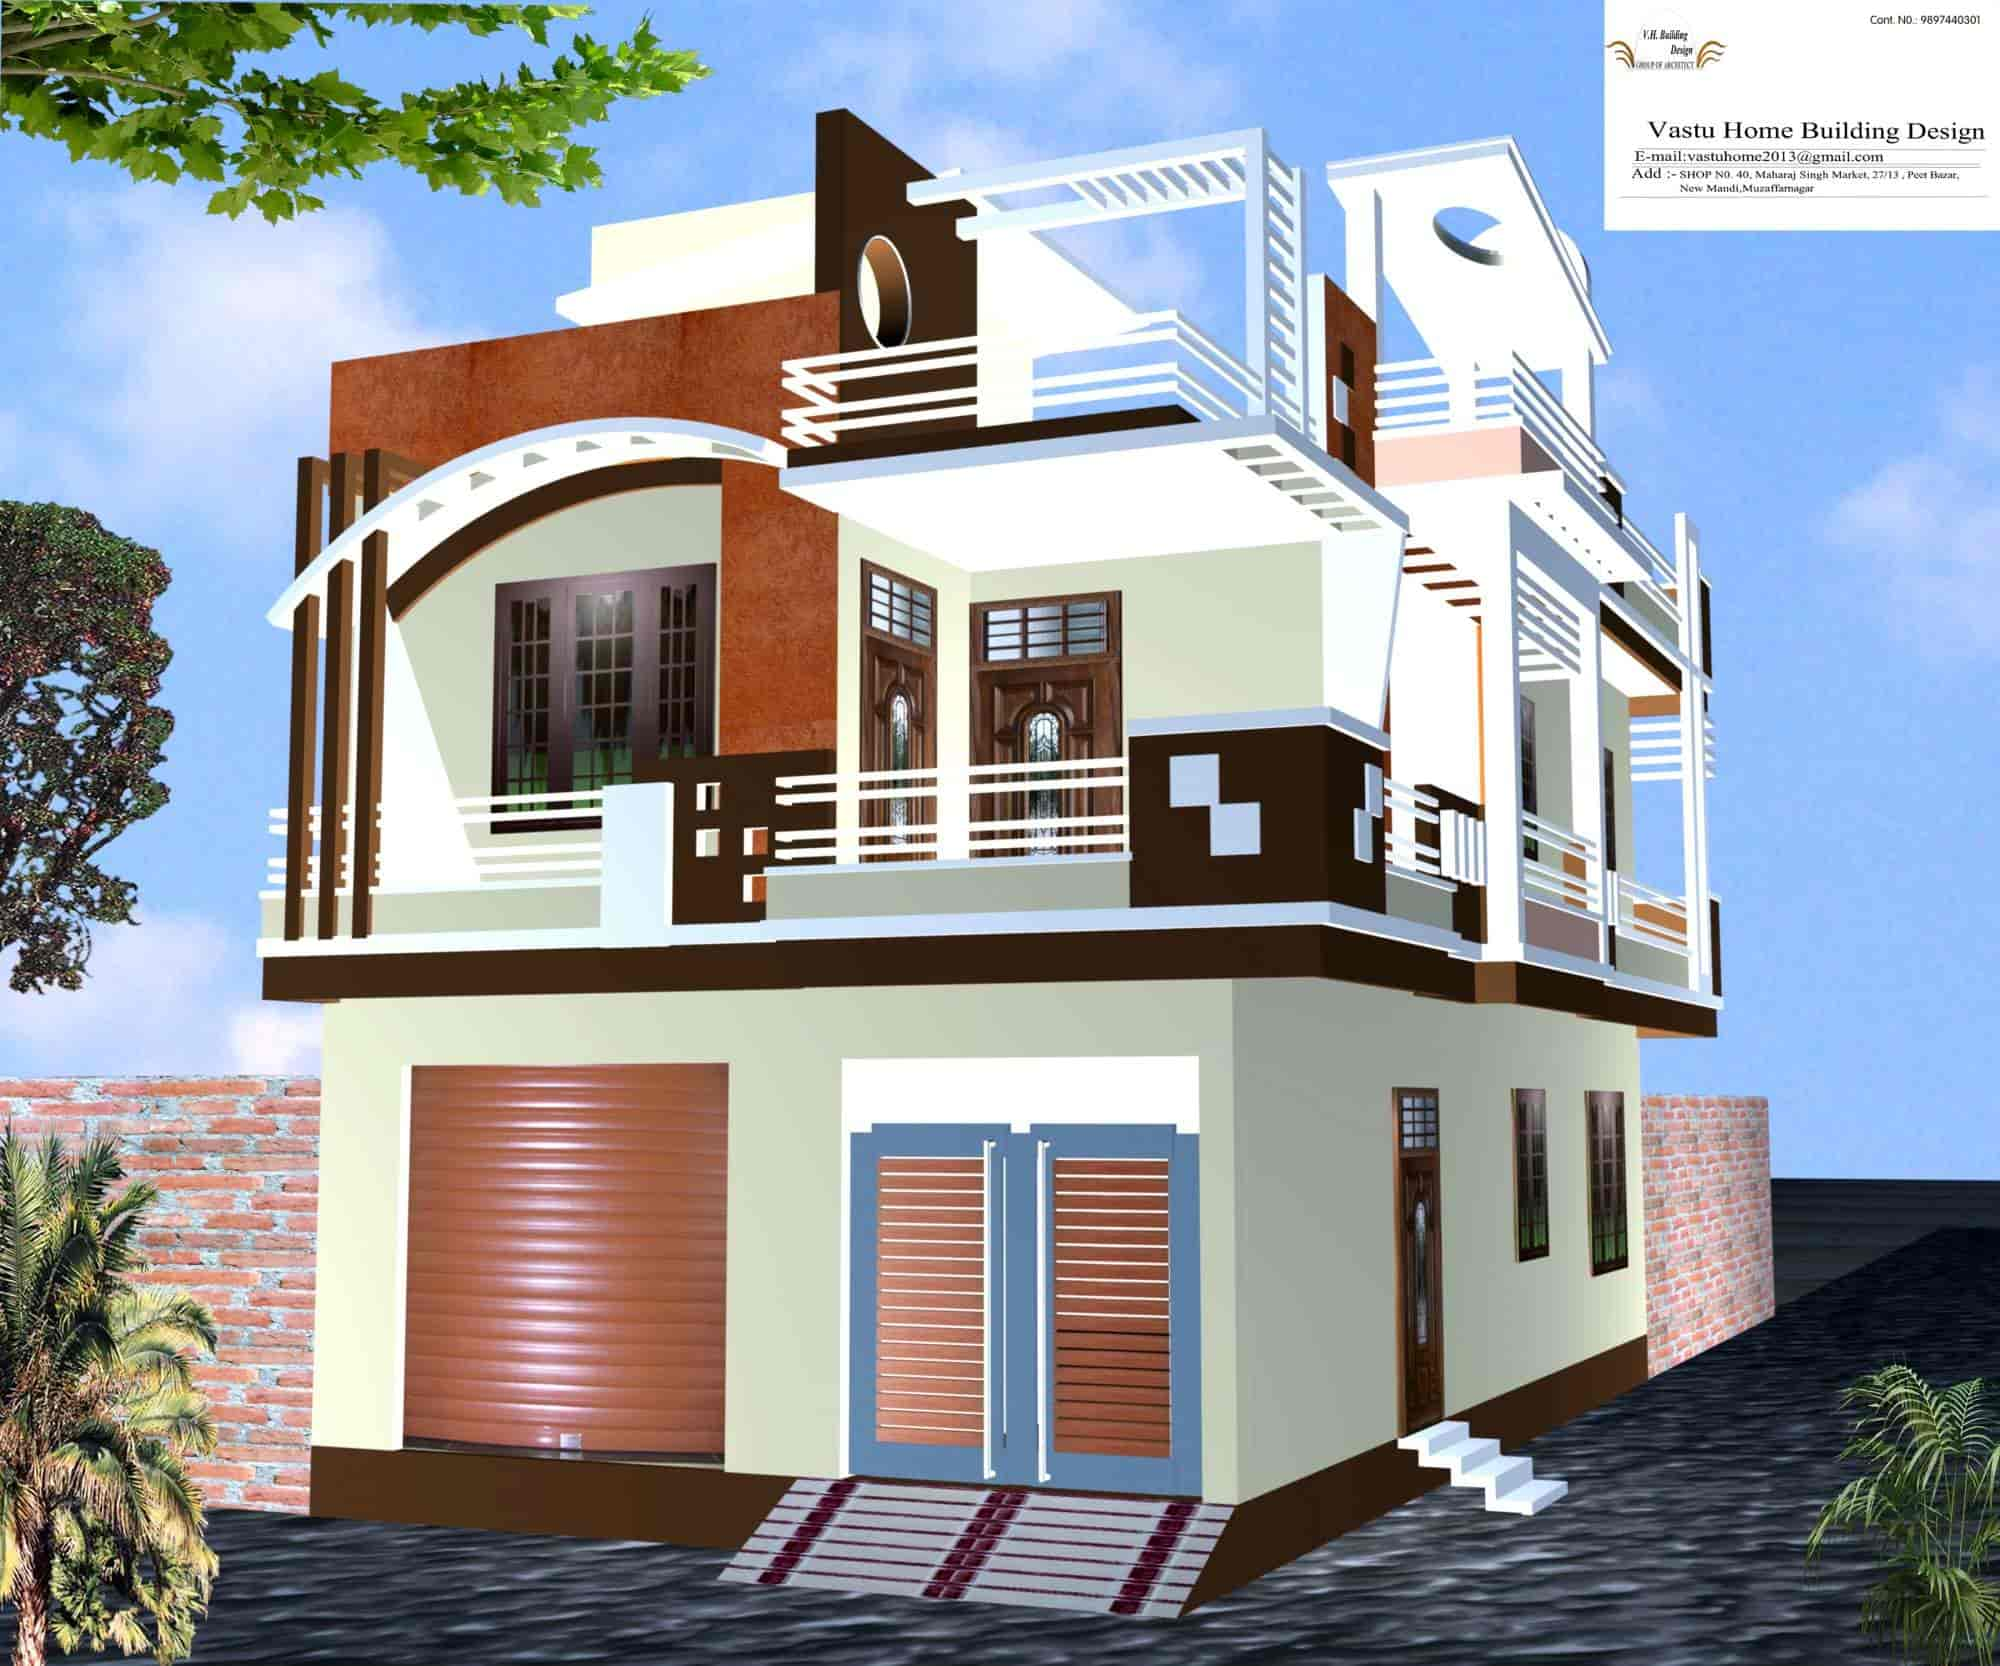 Vastu Home Building Design Photos Muzaffar Nagar City